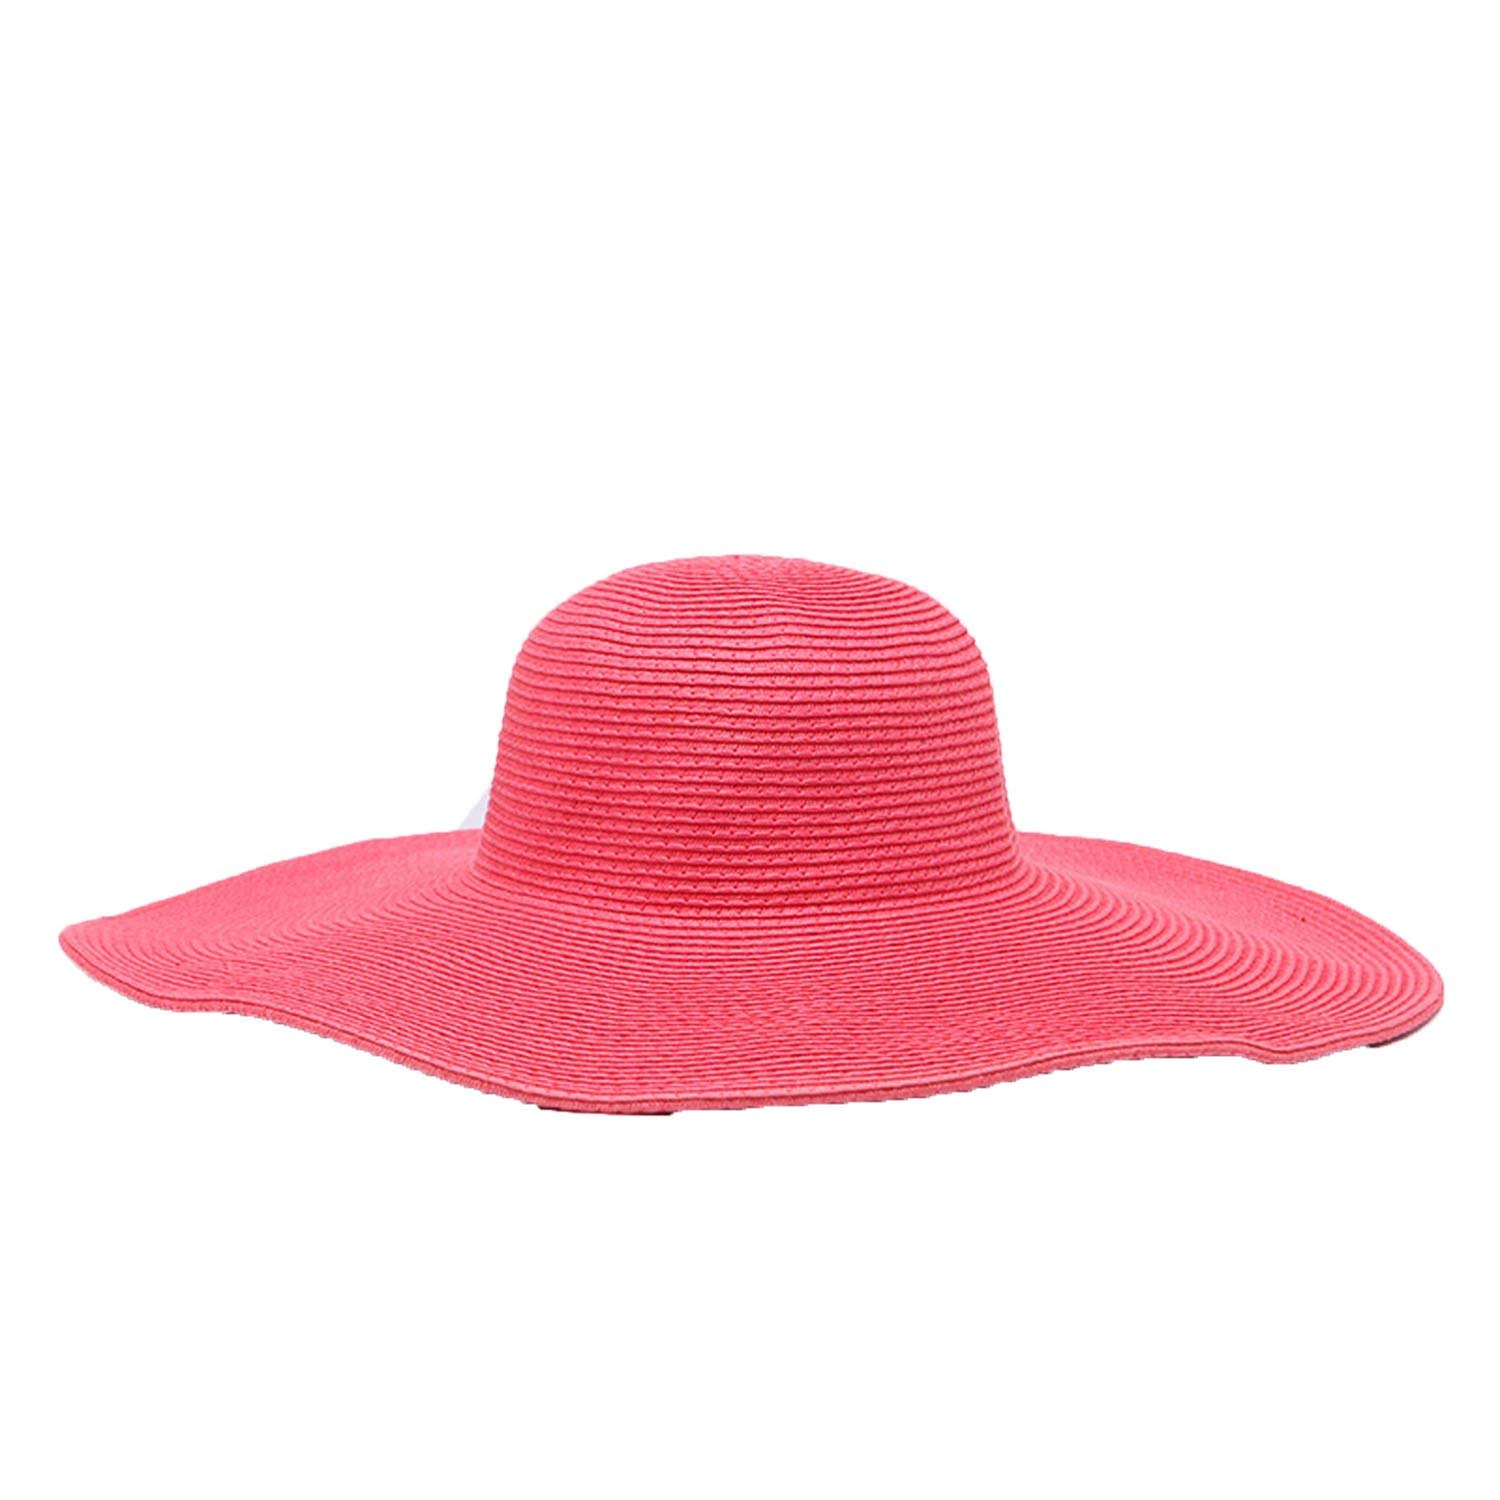 Collocation-Online Wide Brim Floppy Kids Straw Hat Beach Summer Travel Cap Lady Girls